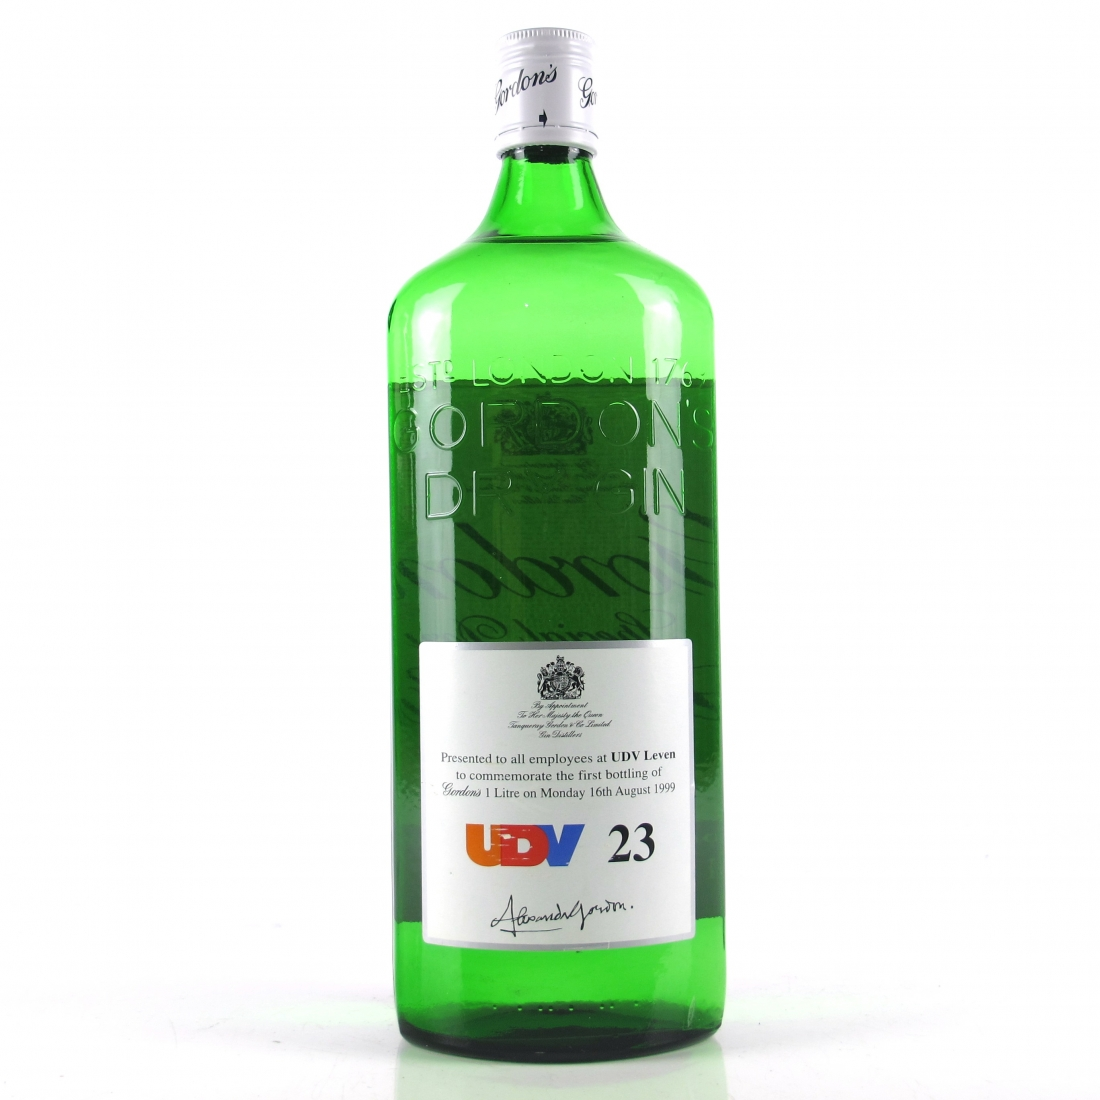 Gordon's Special Dry London Gin First 1 Litre / UDV Leven